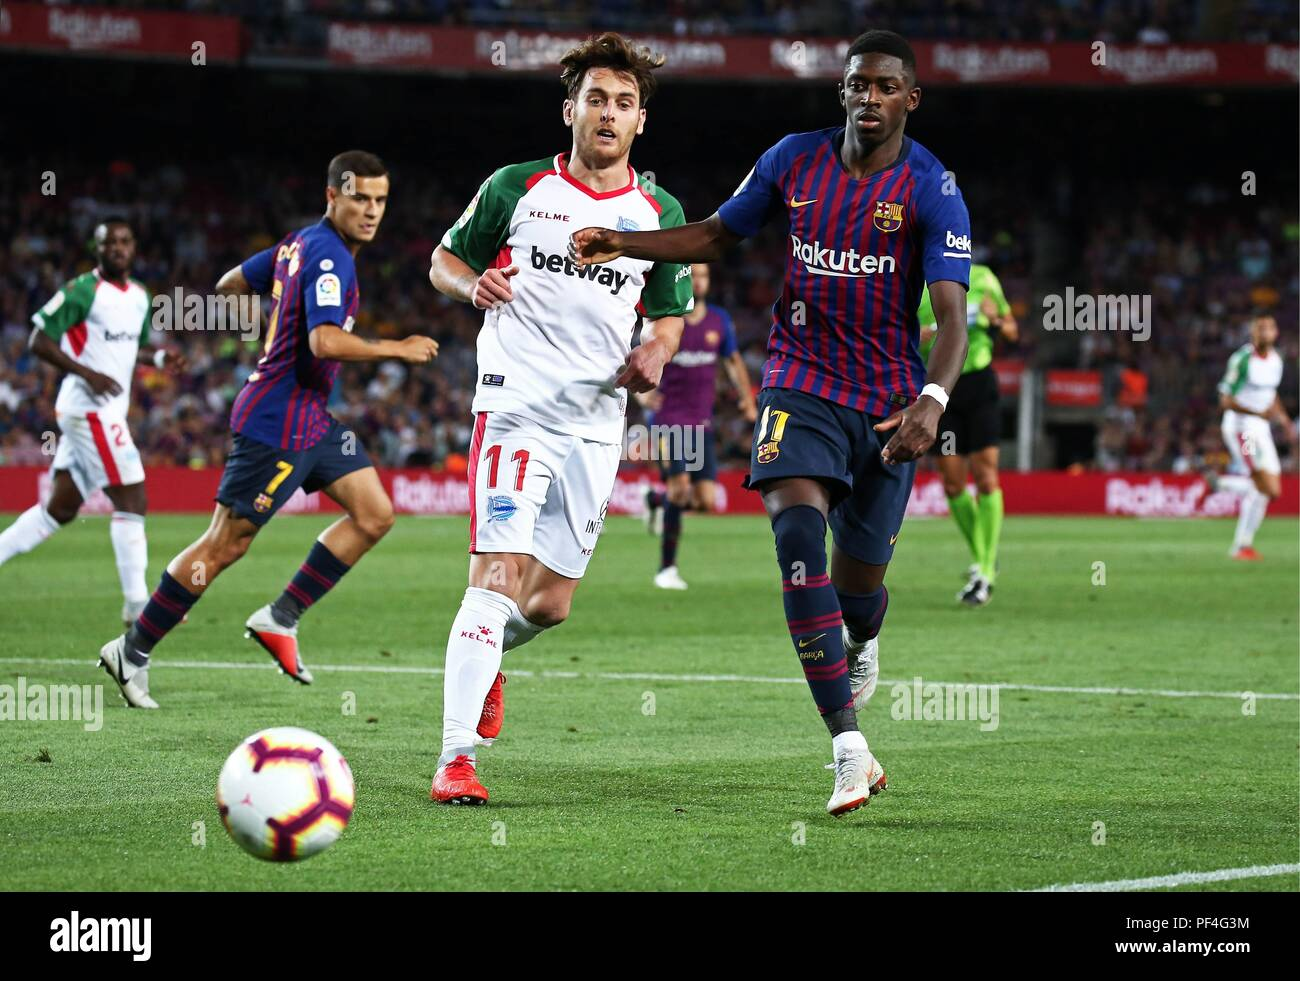 Barcelona, Spain. 18 August 2018. Ousmane Dembele and  Ibai during the match between FC Barcelona and Deportivo Alaves, correspondiong to the week 1 of the spanish league, on 18th August 2018. Photo: Joan Valls/Urbanandsport/Cordon Press   Cordon Press Credit: CORDON PRESS/Alamy Live News - Stock Image